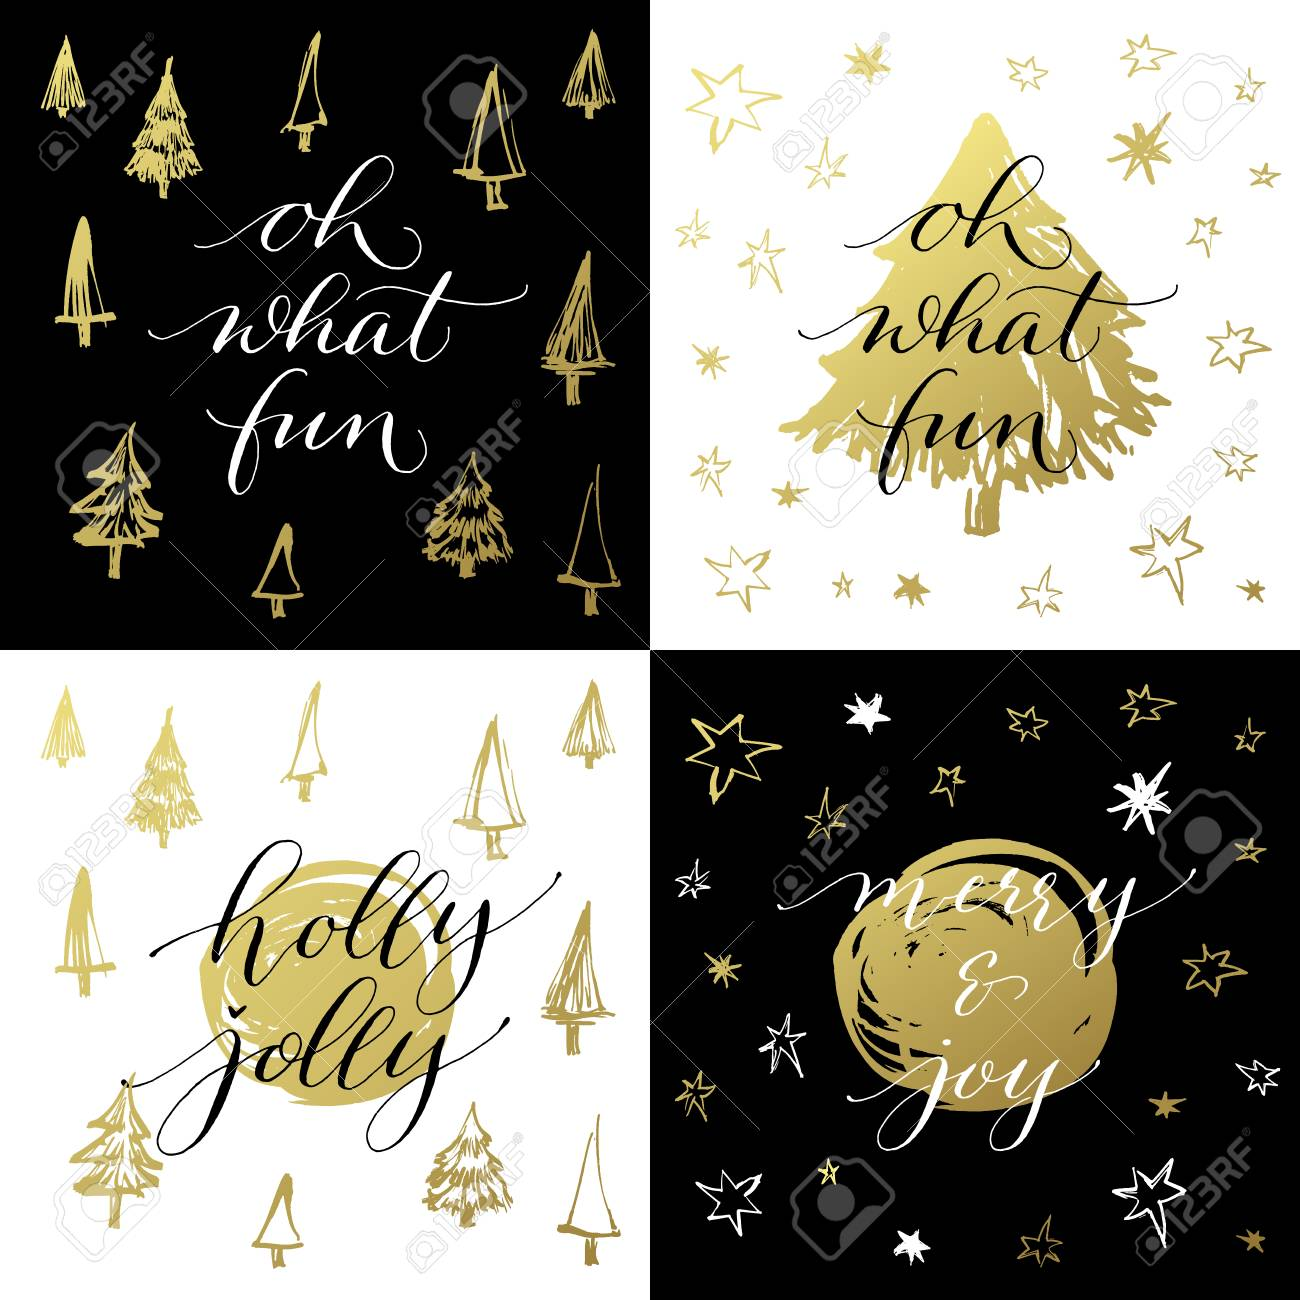 set of christmas greeting cards xmas calligraphy oh what fun holly jolly merry